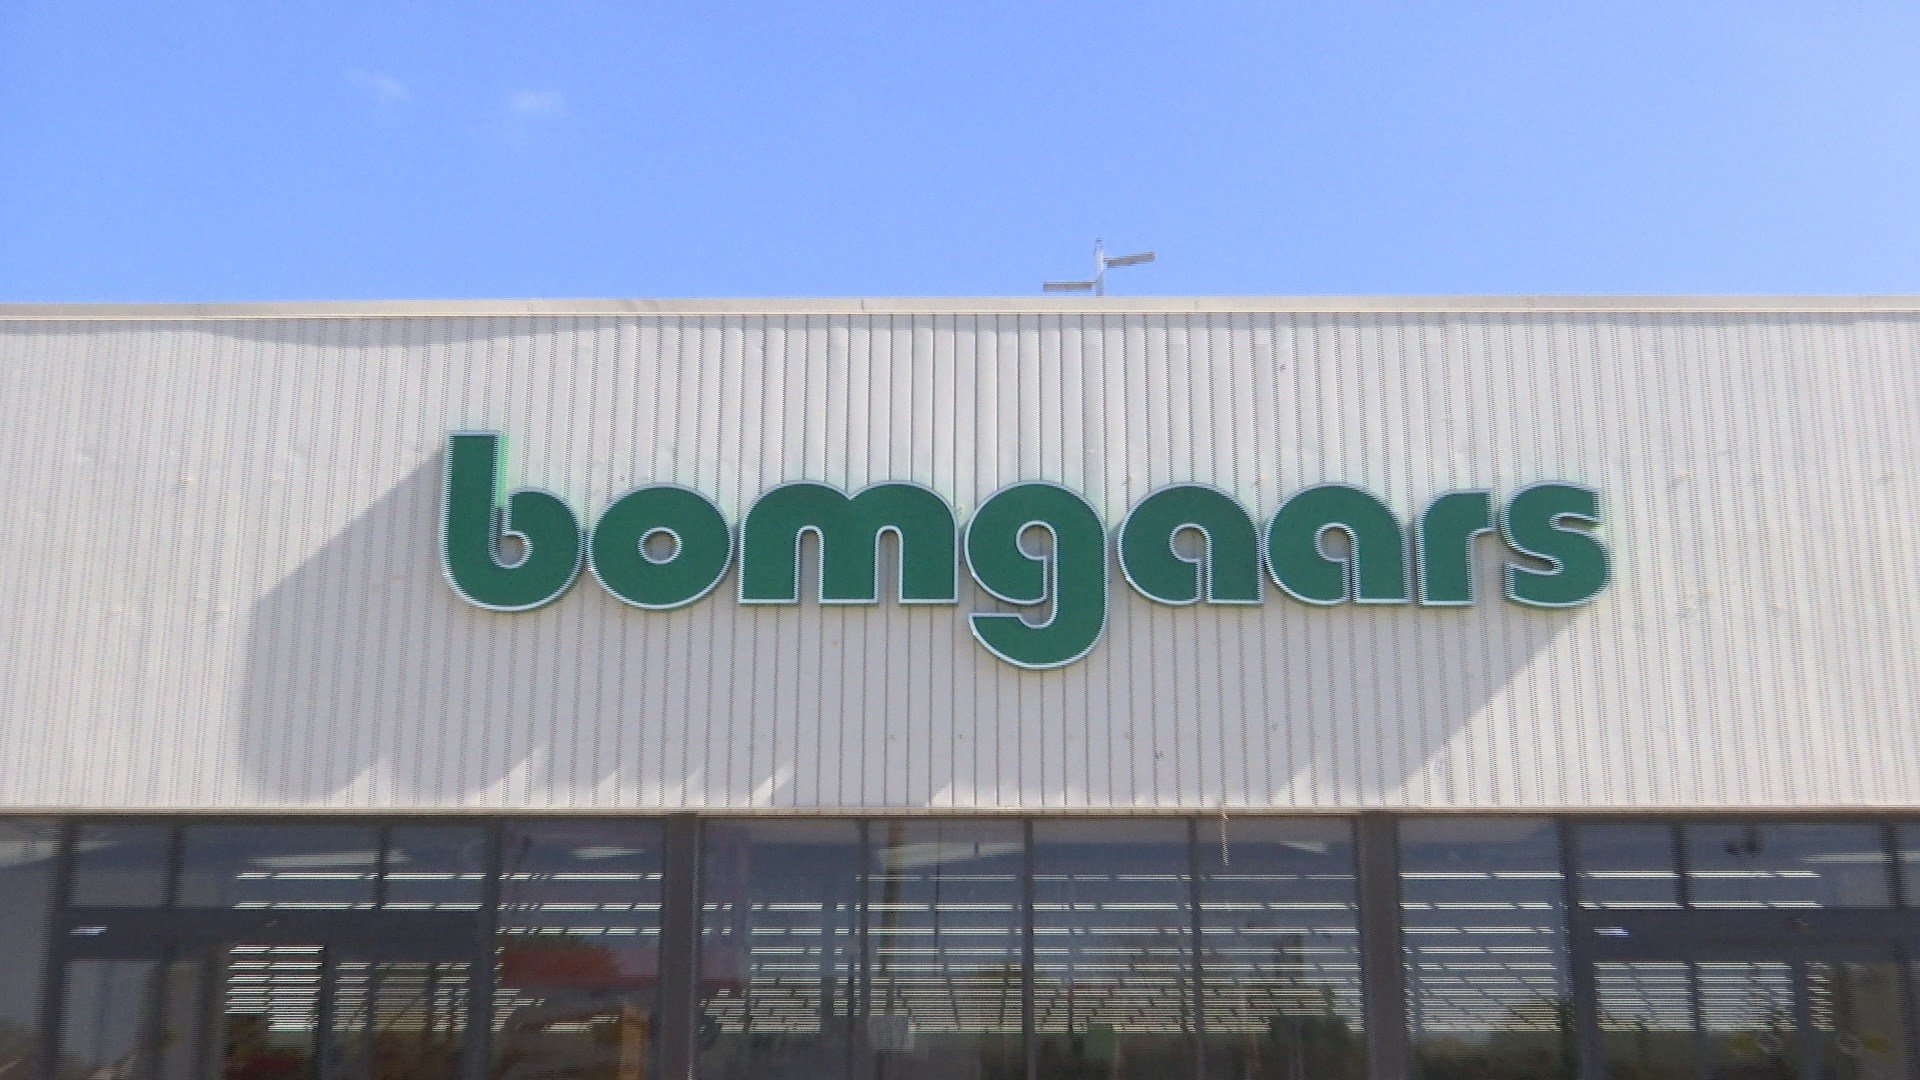 Bomgaars donates cleaning supplies to waseca county for Bomgaars